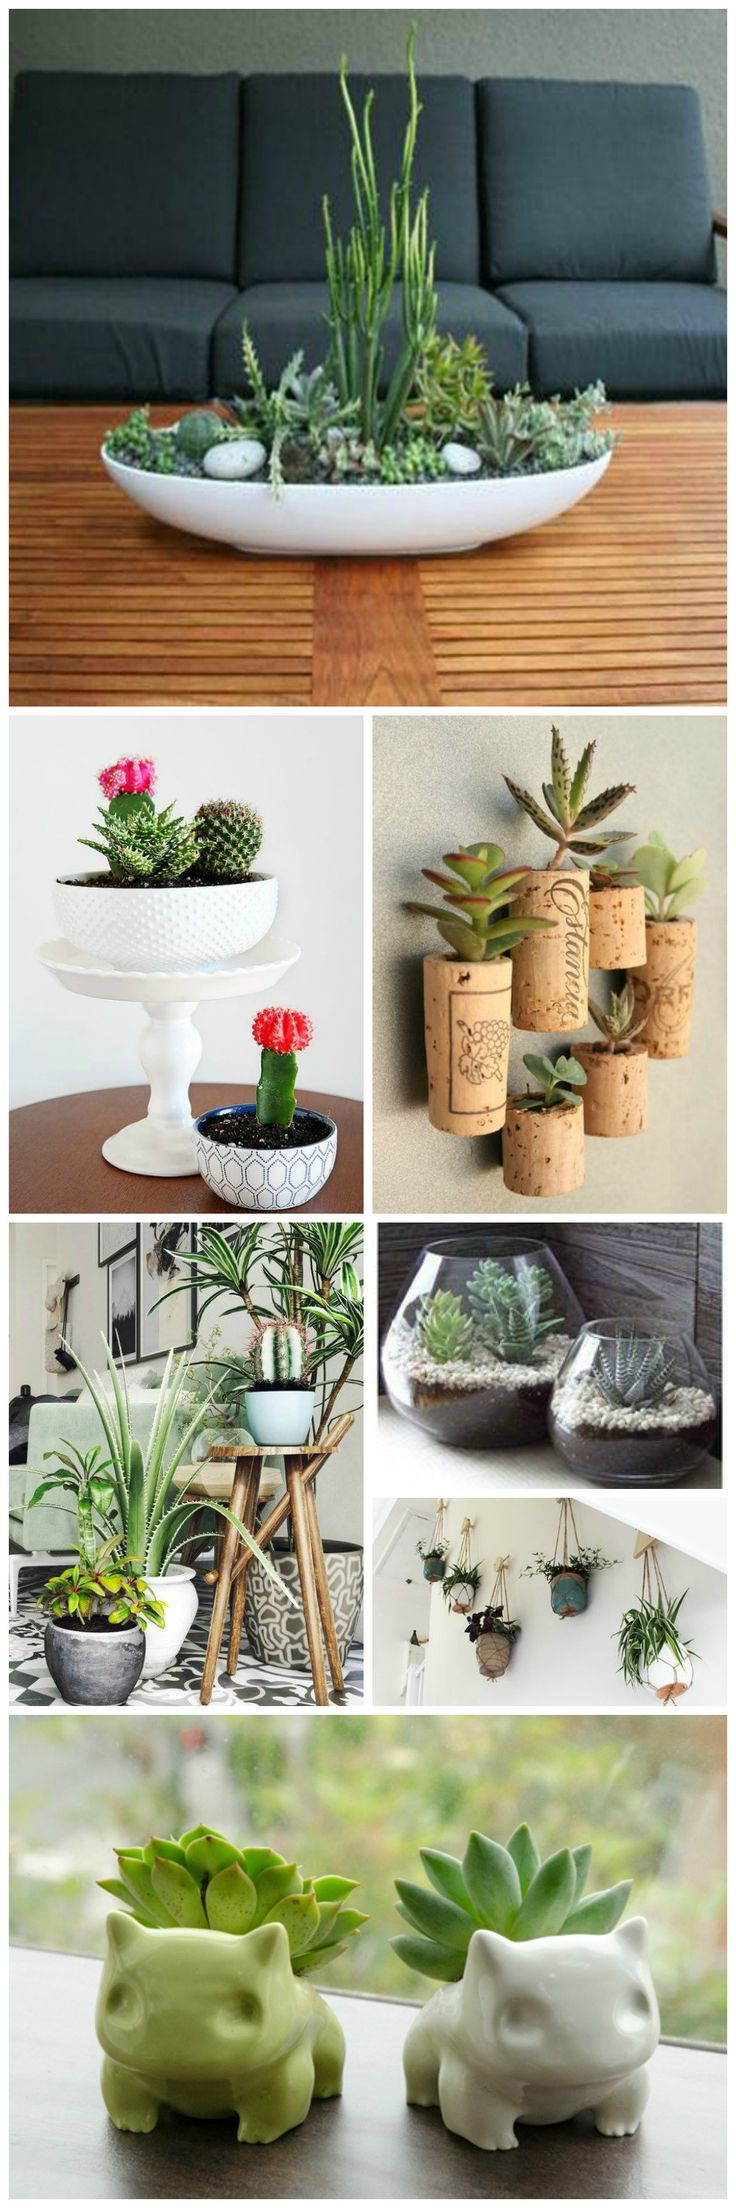 Plant Decoration In Living Room: 20 Cute Indoor Succulent Plant Decor Ideas To Beautify